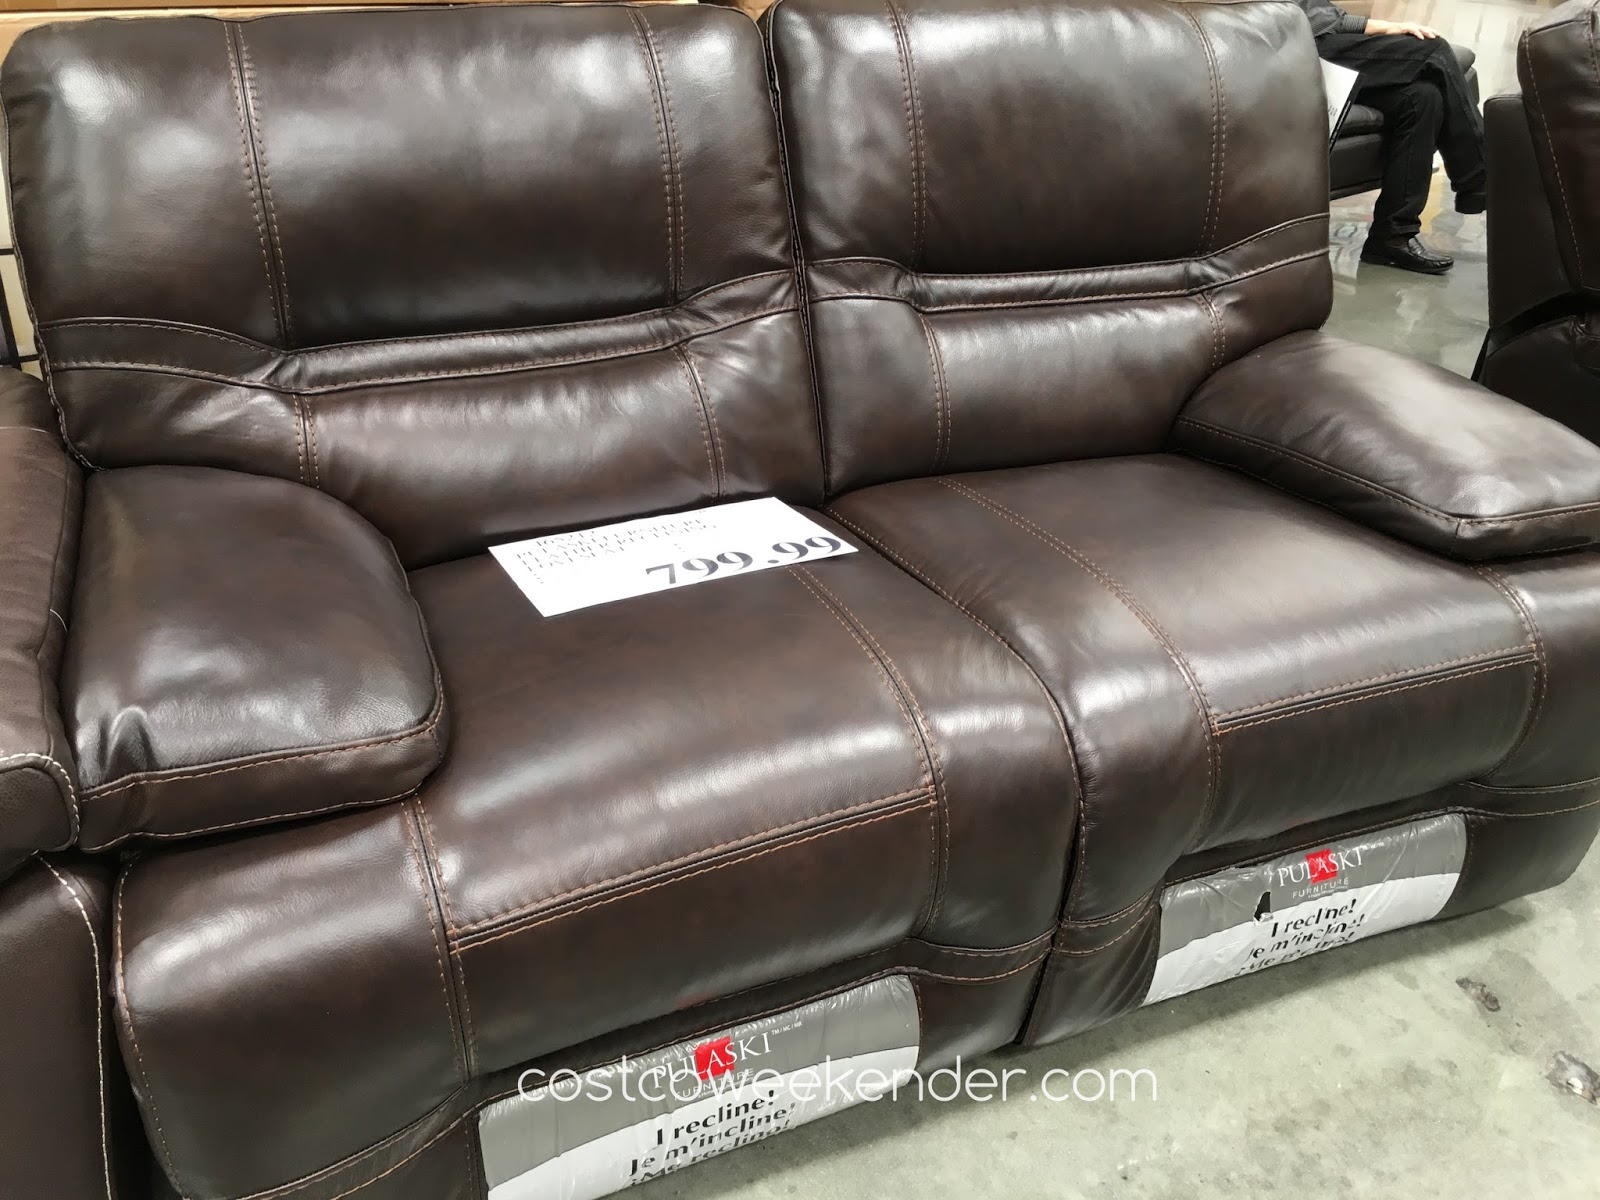 Costco Leather Chairs Wingback Chair Covers Australia Pulaski Furniture Reclining Loveseat